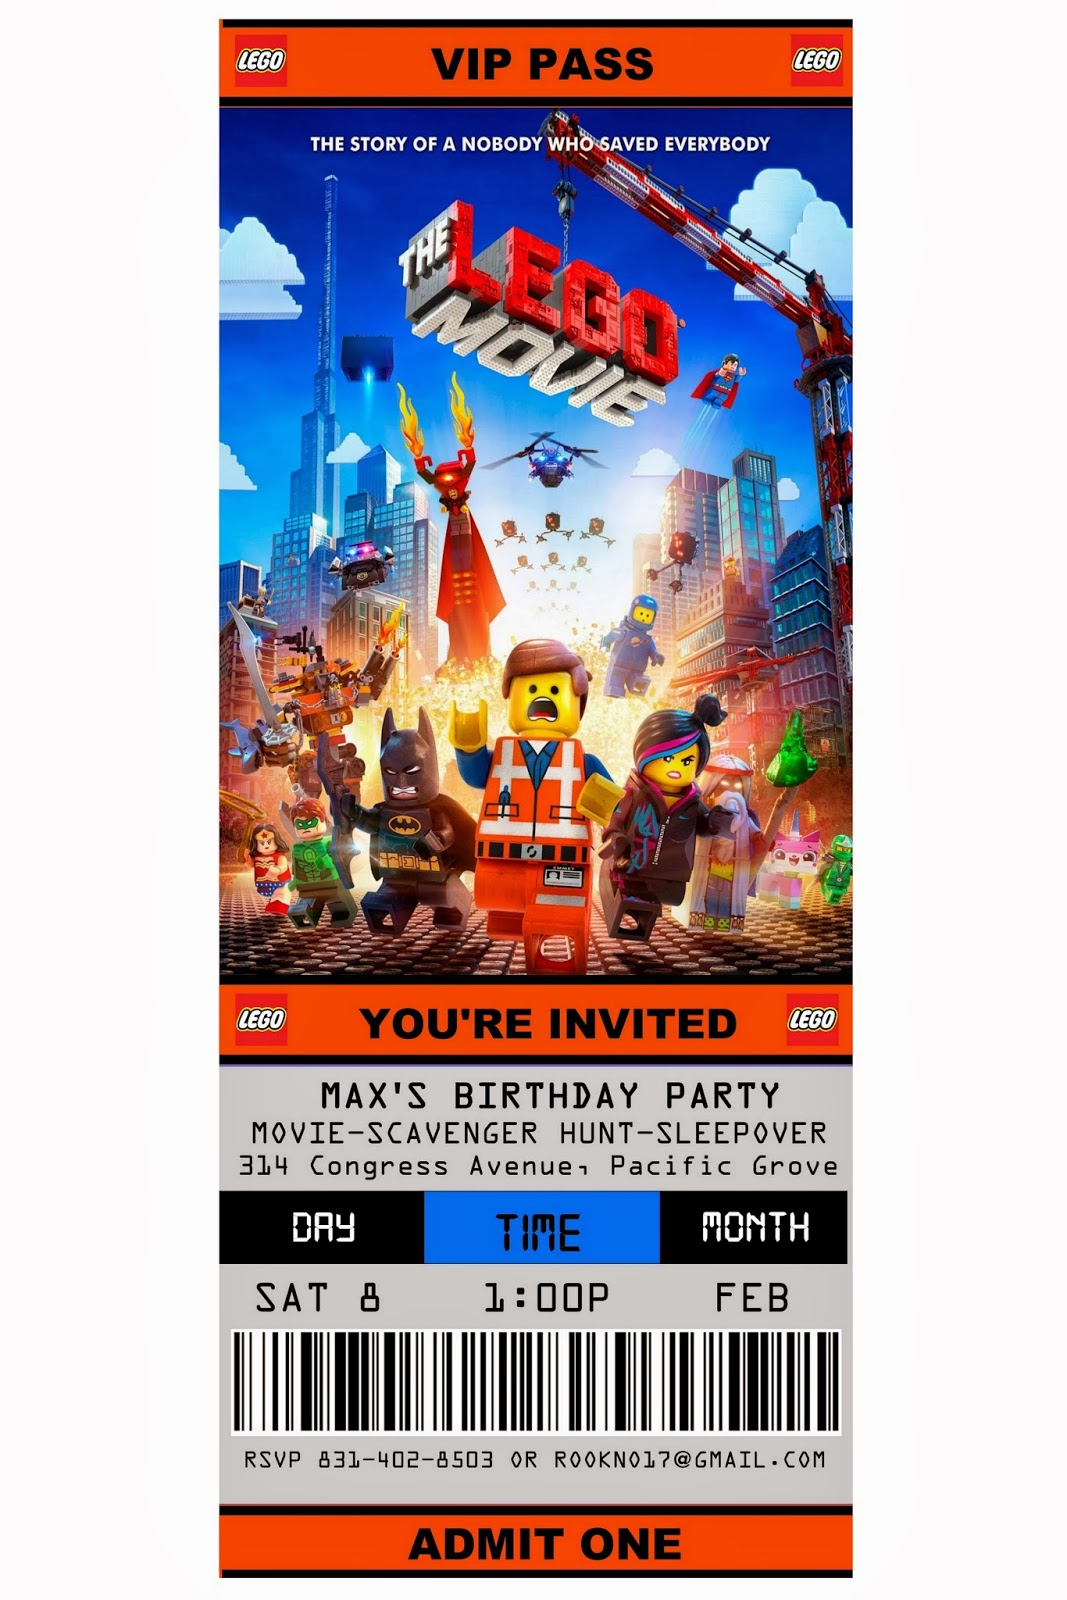 free printable ticket style party invitations the lego movie